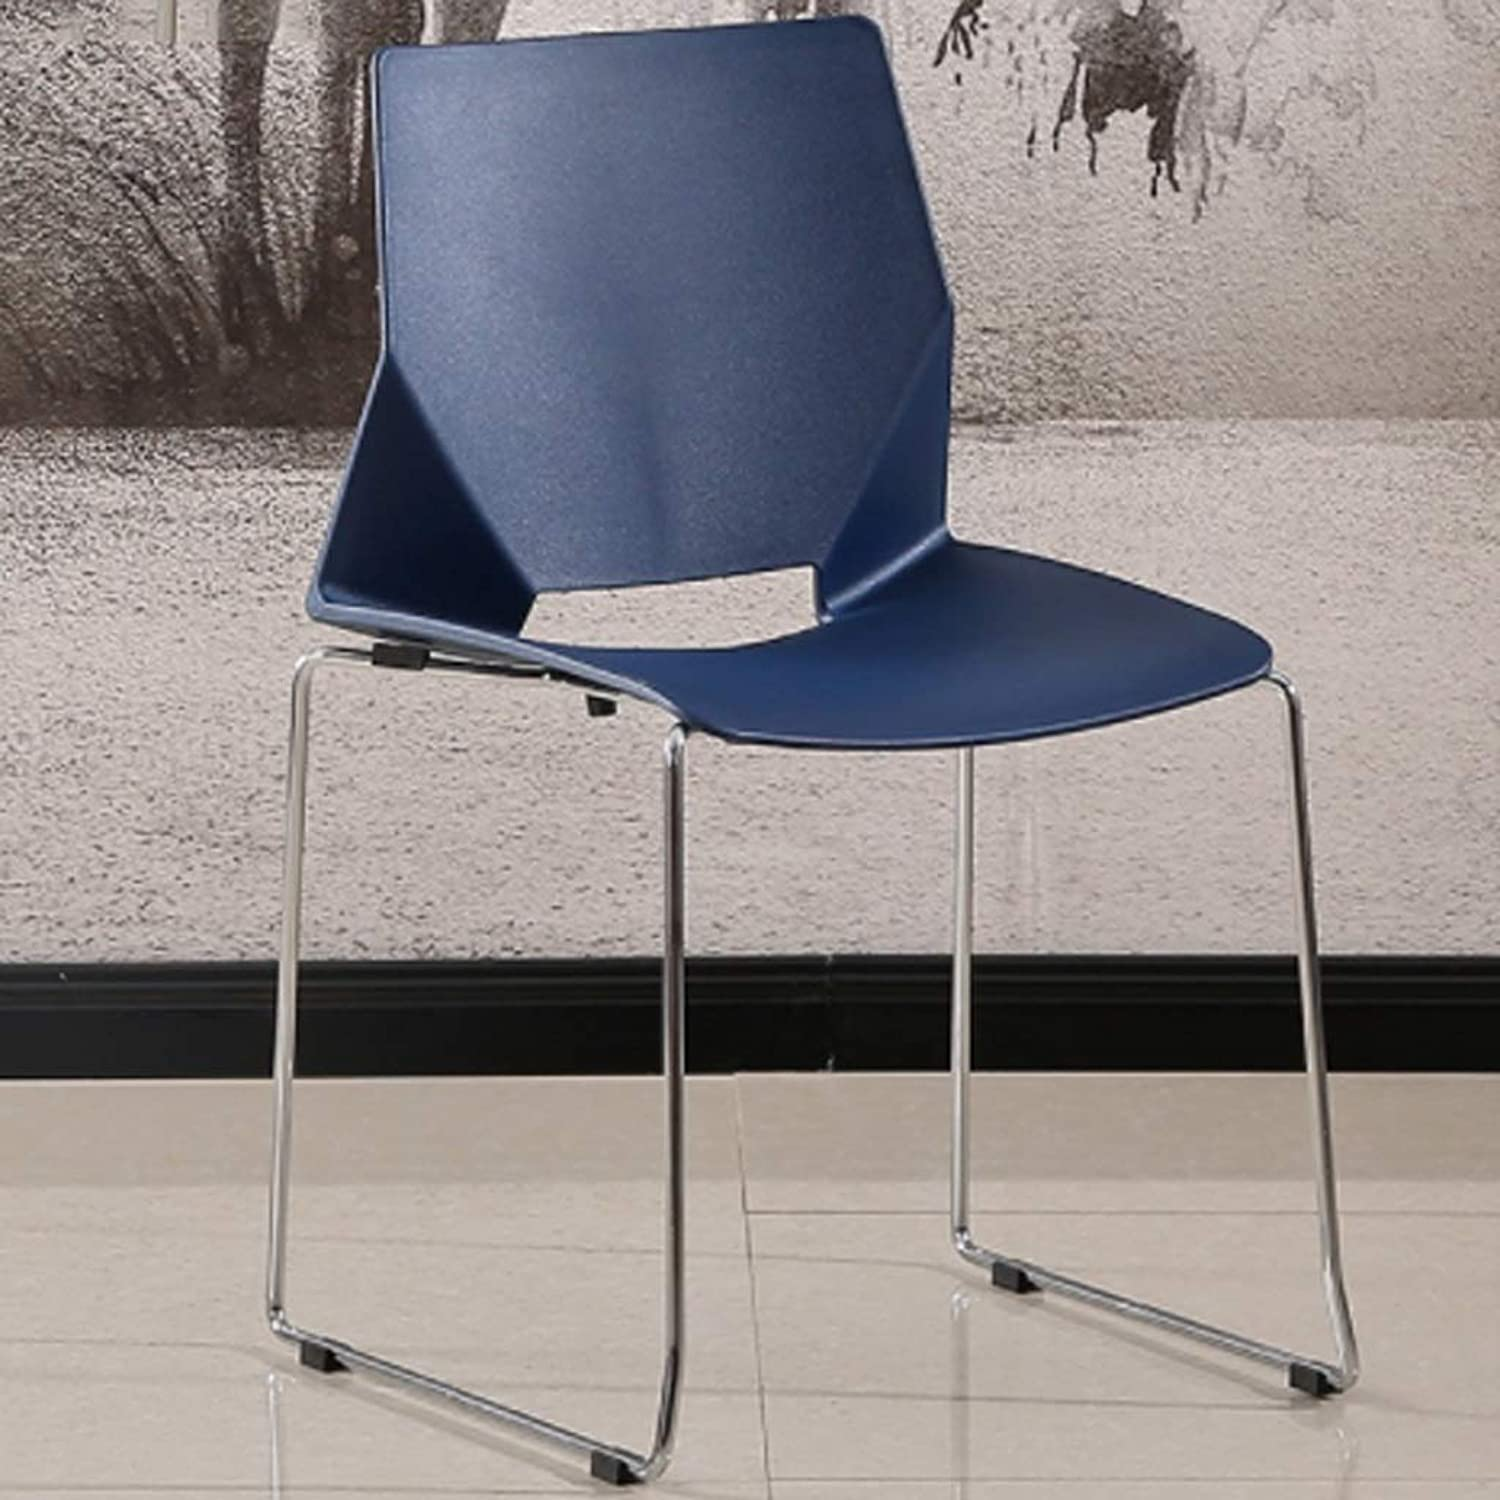 Stool-Chair Simple Computer Chair Office Chair, Dining Chair Plastic Retro Modern Furniture for Living Room, Desk, Patio, Terrace, Office, Kitchen, Lounging, Cafeterias & More (46  53  80CM)